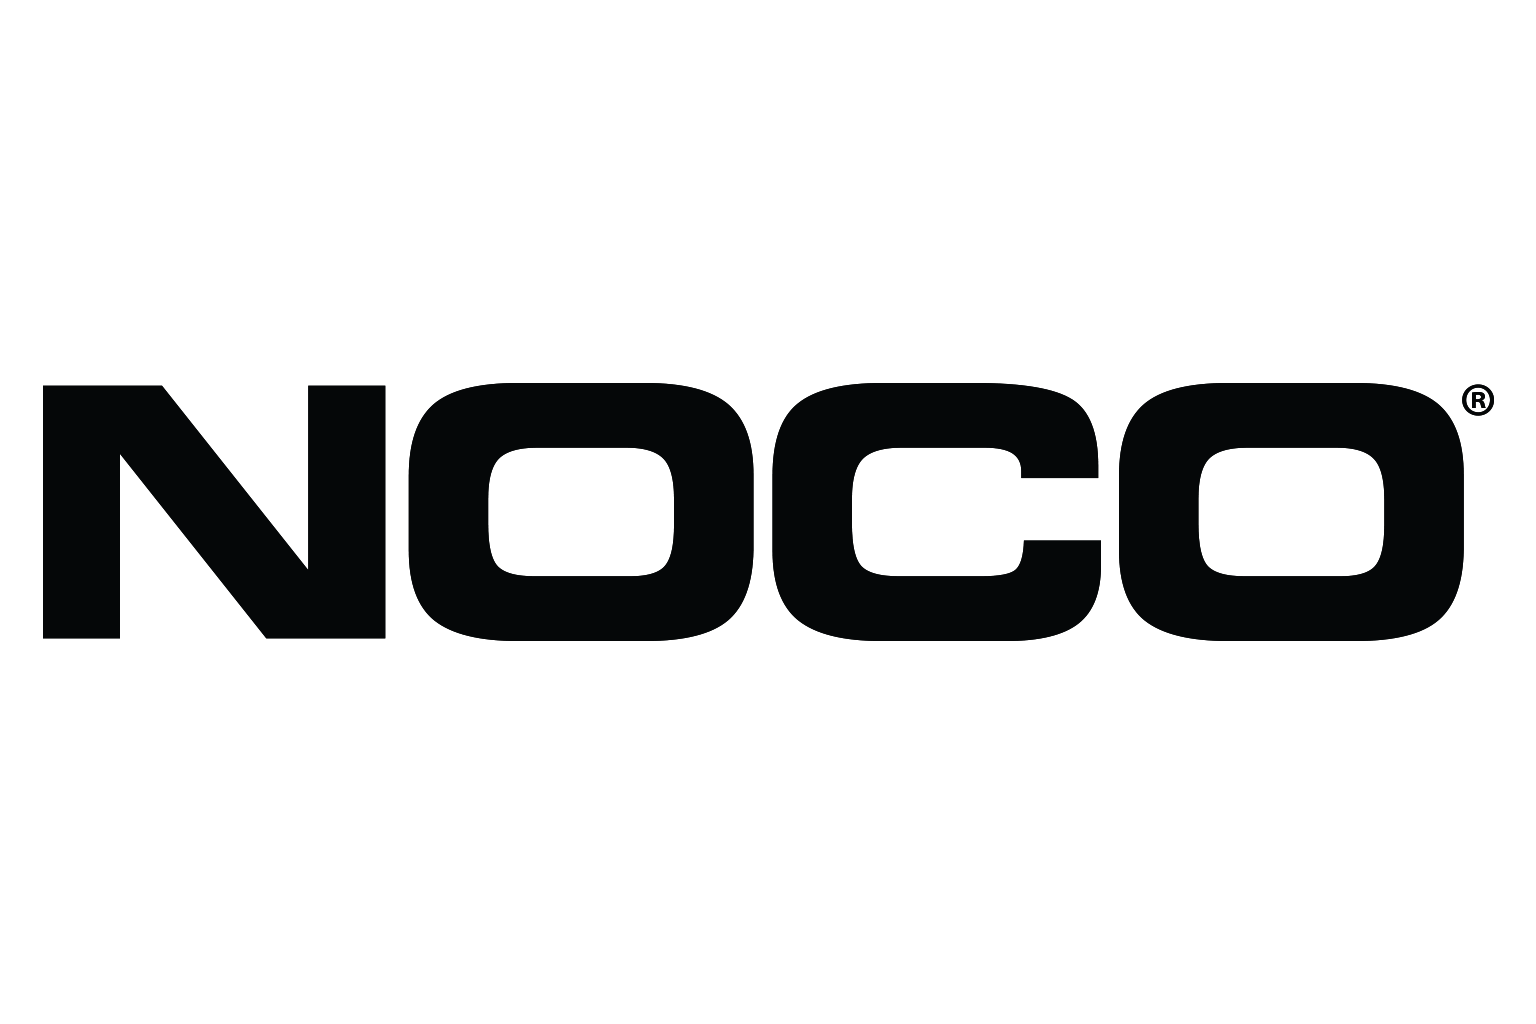 The NOCO Company